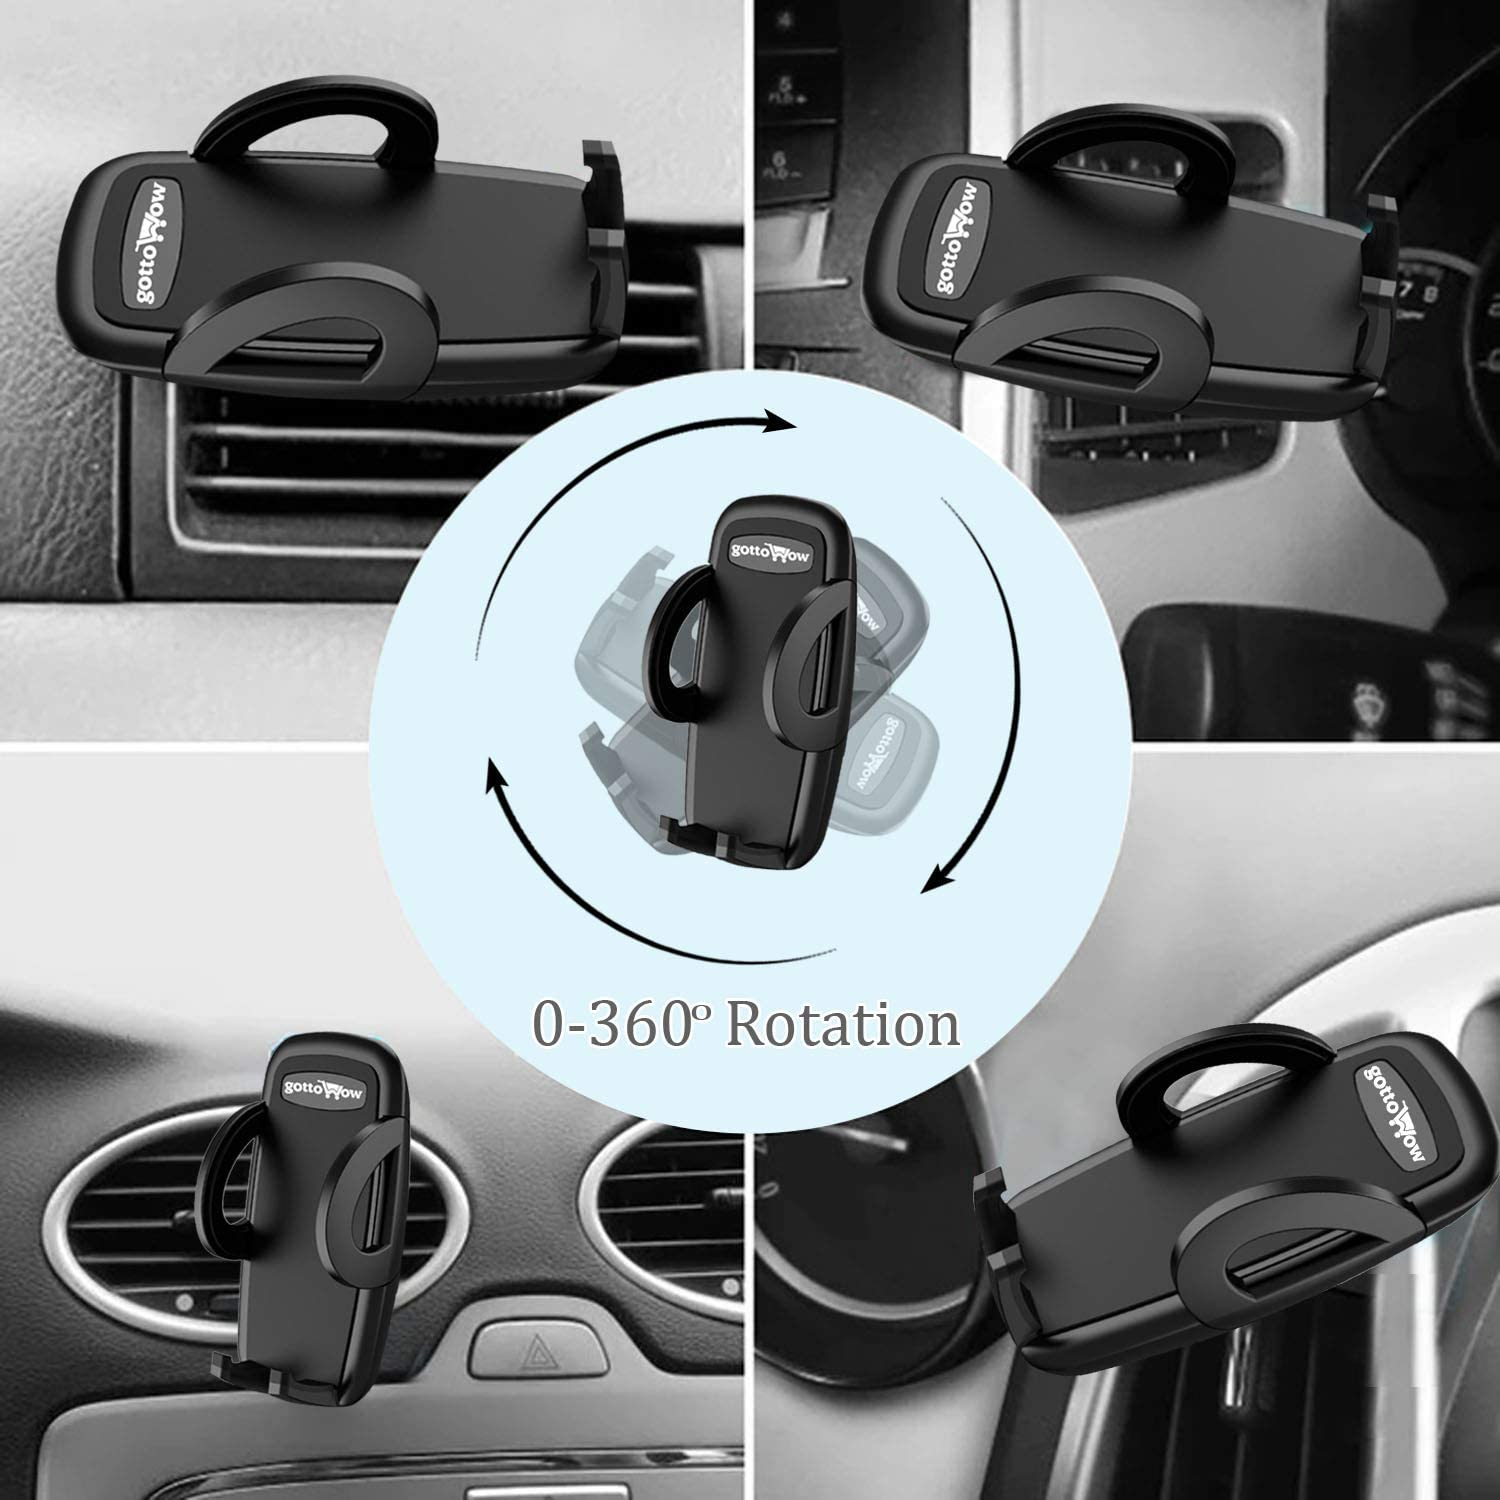 Google Pixel 3 XL Gottowow Car Phone Mount Air Vent Cell Phone Holder for Car: The Compatible Car Mount Holder with iPhone 11//11 Pro//Xs//XS Max // 8//7 // 6 and Other Samsung Galaxy S9+